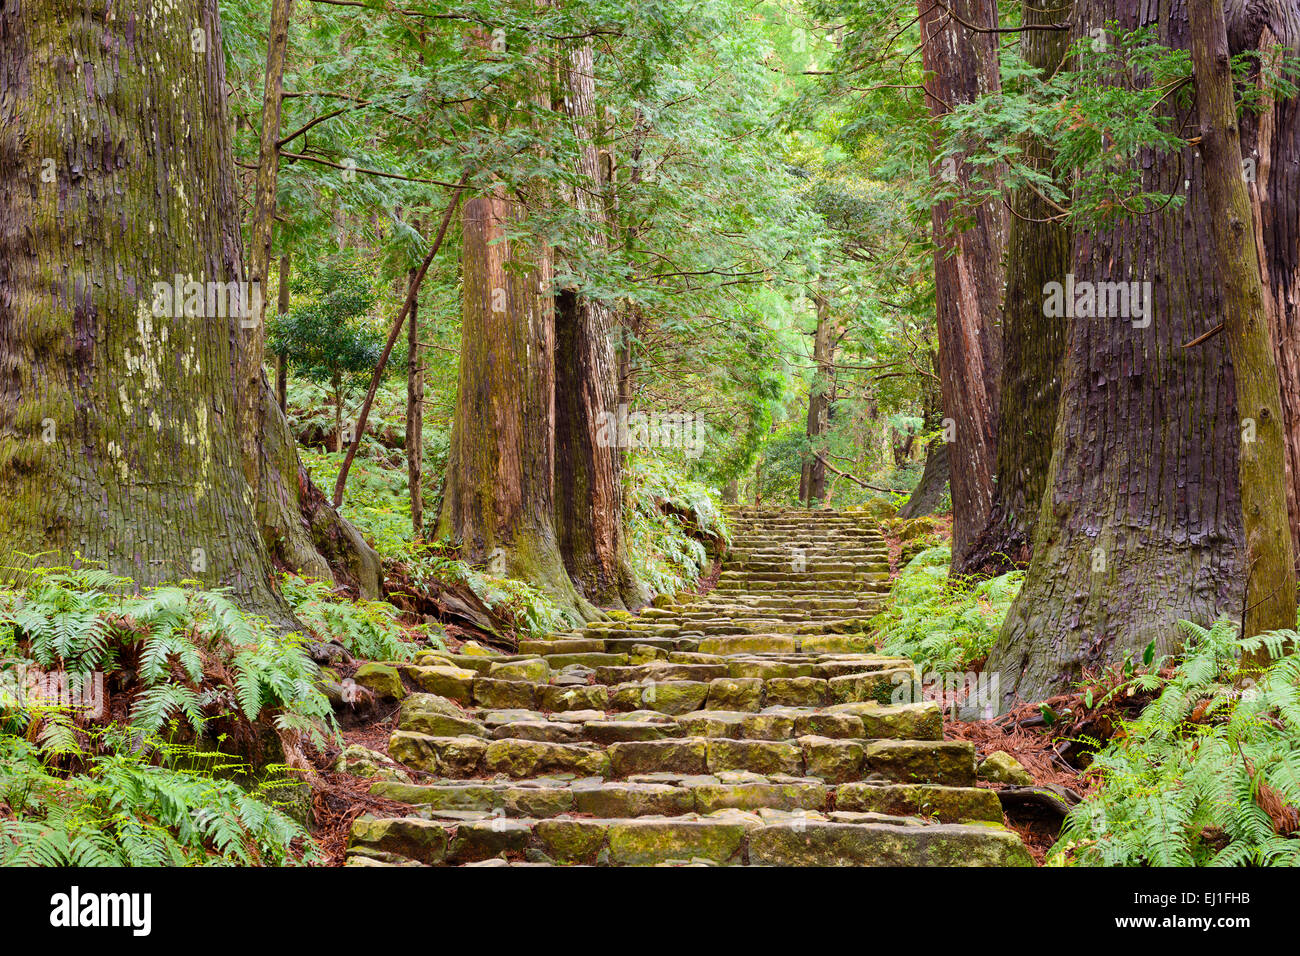 Kumano Kodo at Daimon-zaka, a sacred trail designated as a UNESCO World Heritage site in Nachi, Wakayama, Japan. Stock Photo